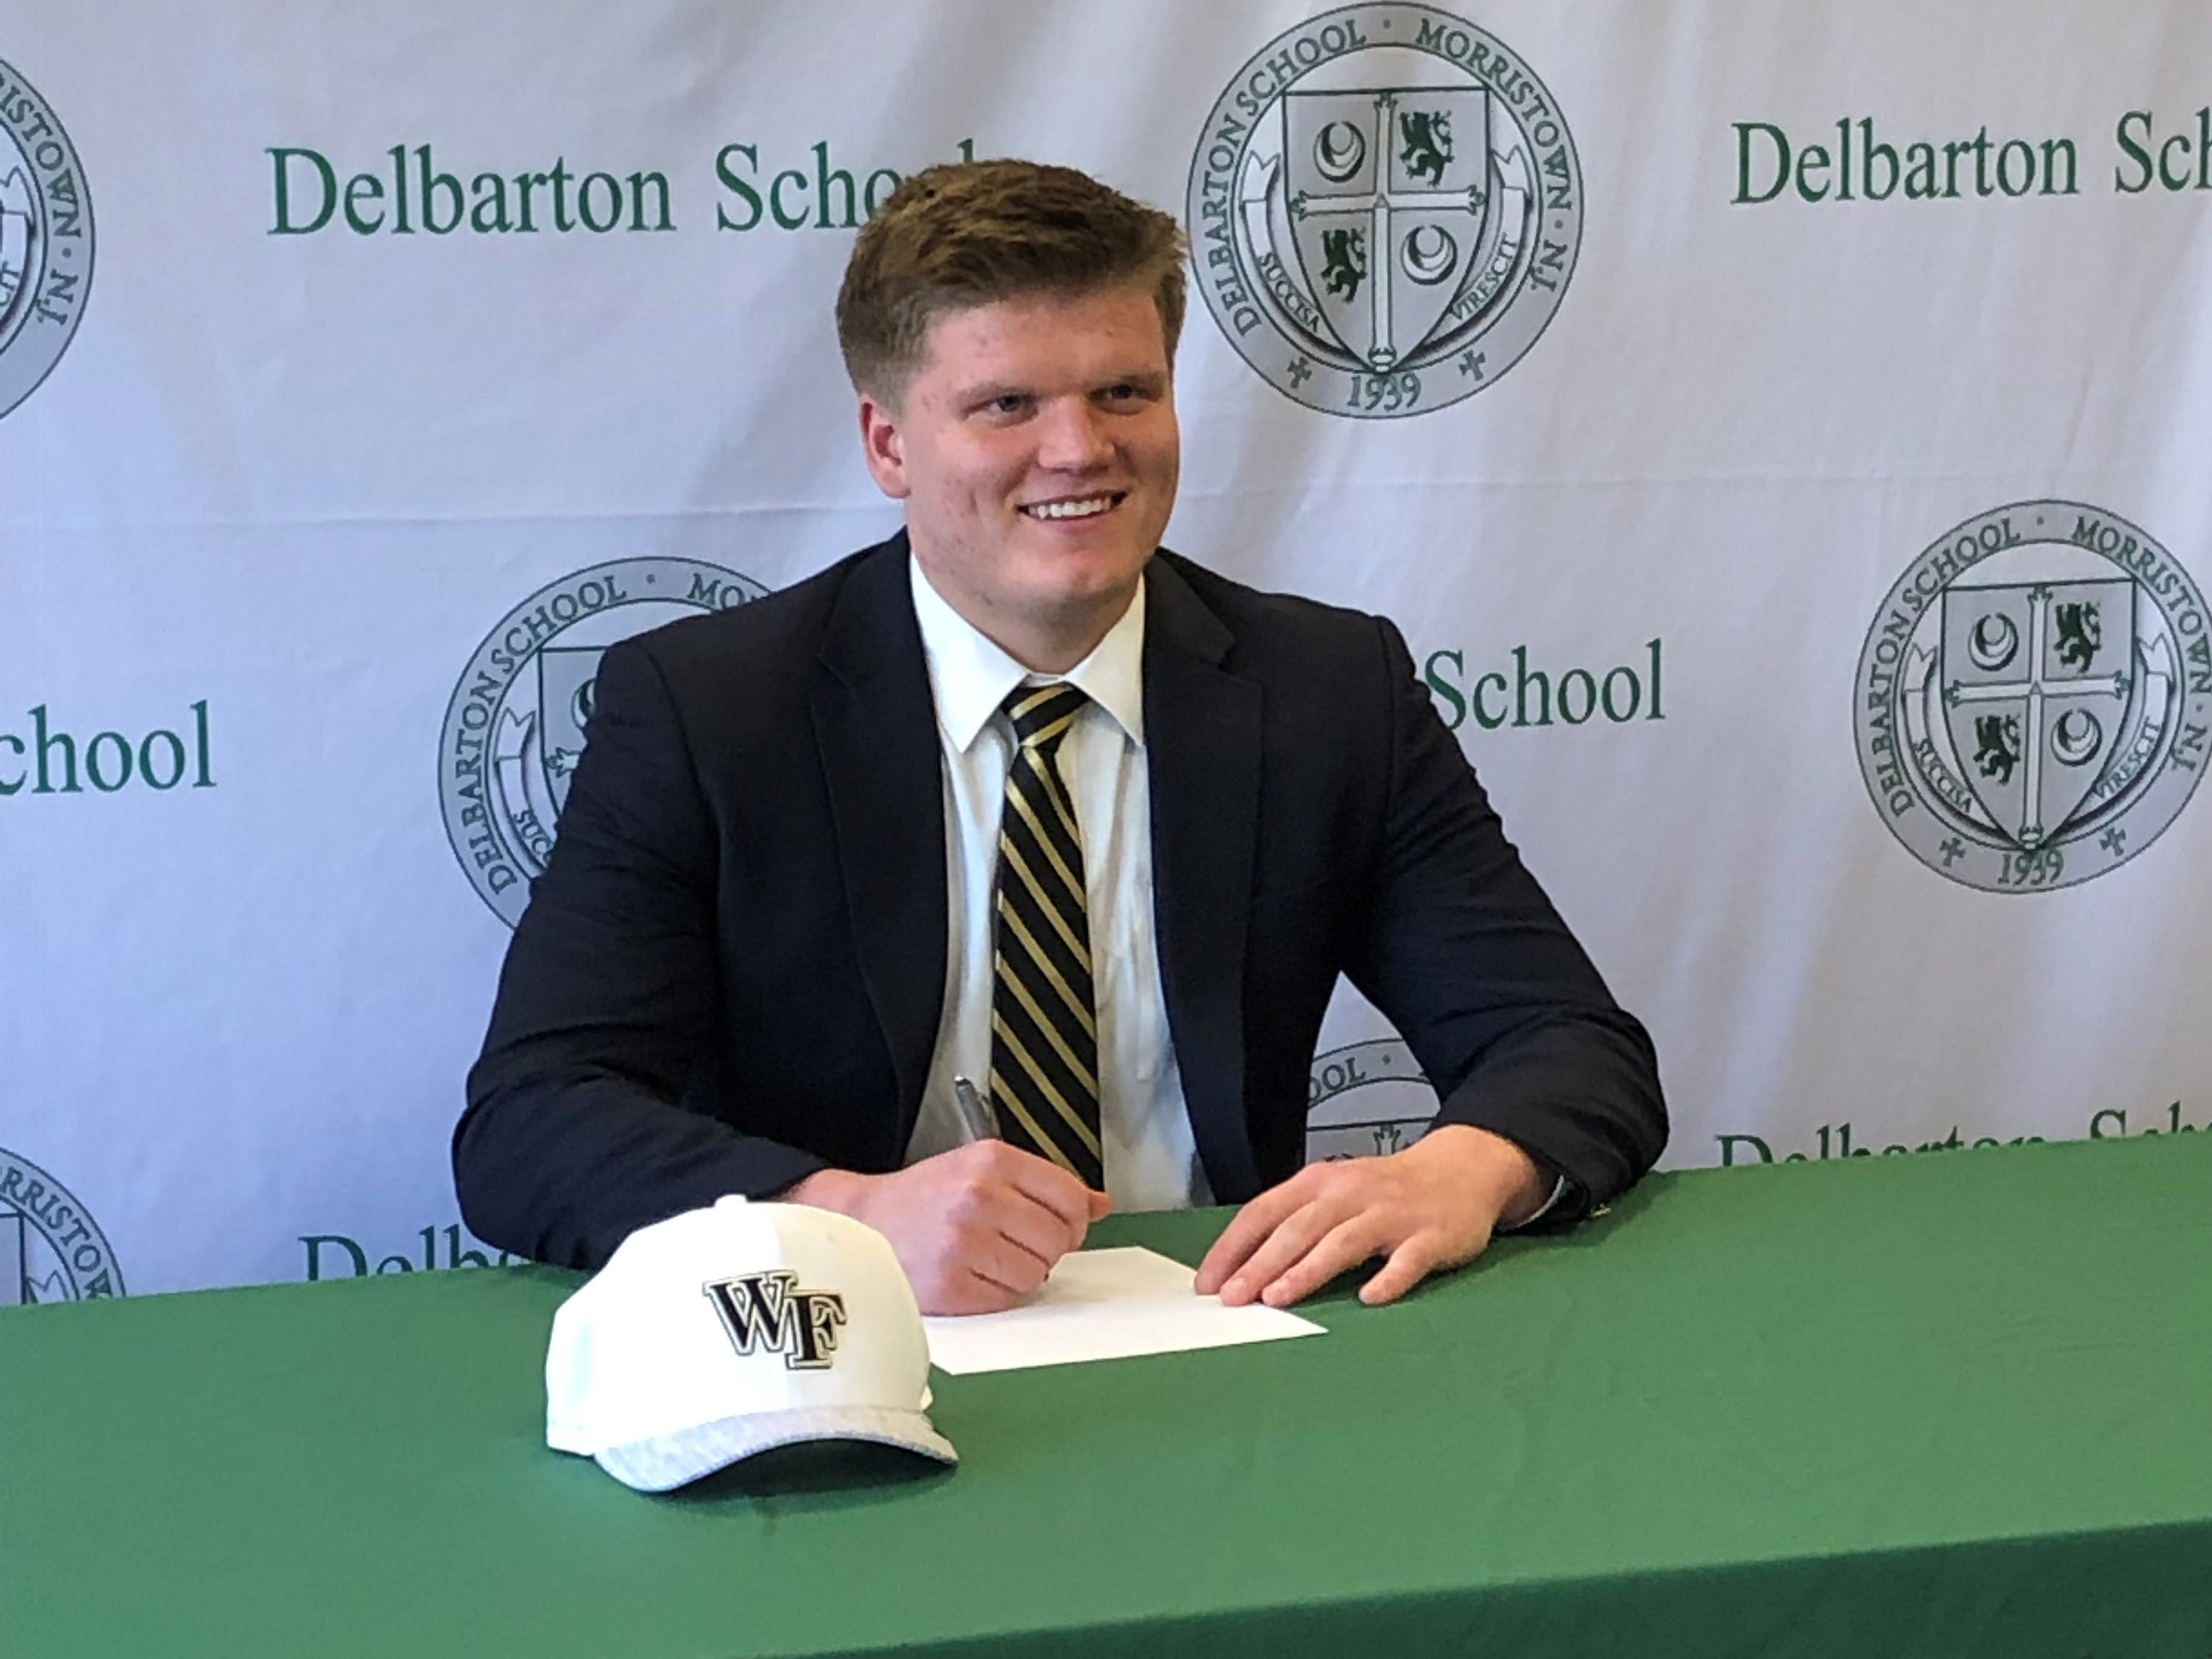 Delbarton senior Will Smart signed a National Letter of Intent with Wake Forest football on Wednesday.